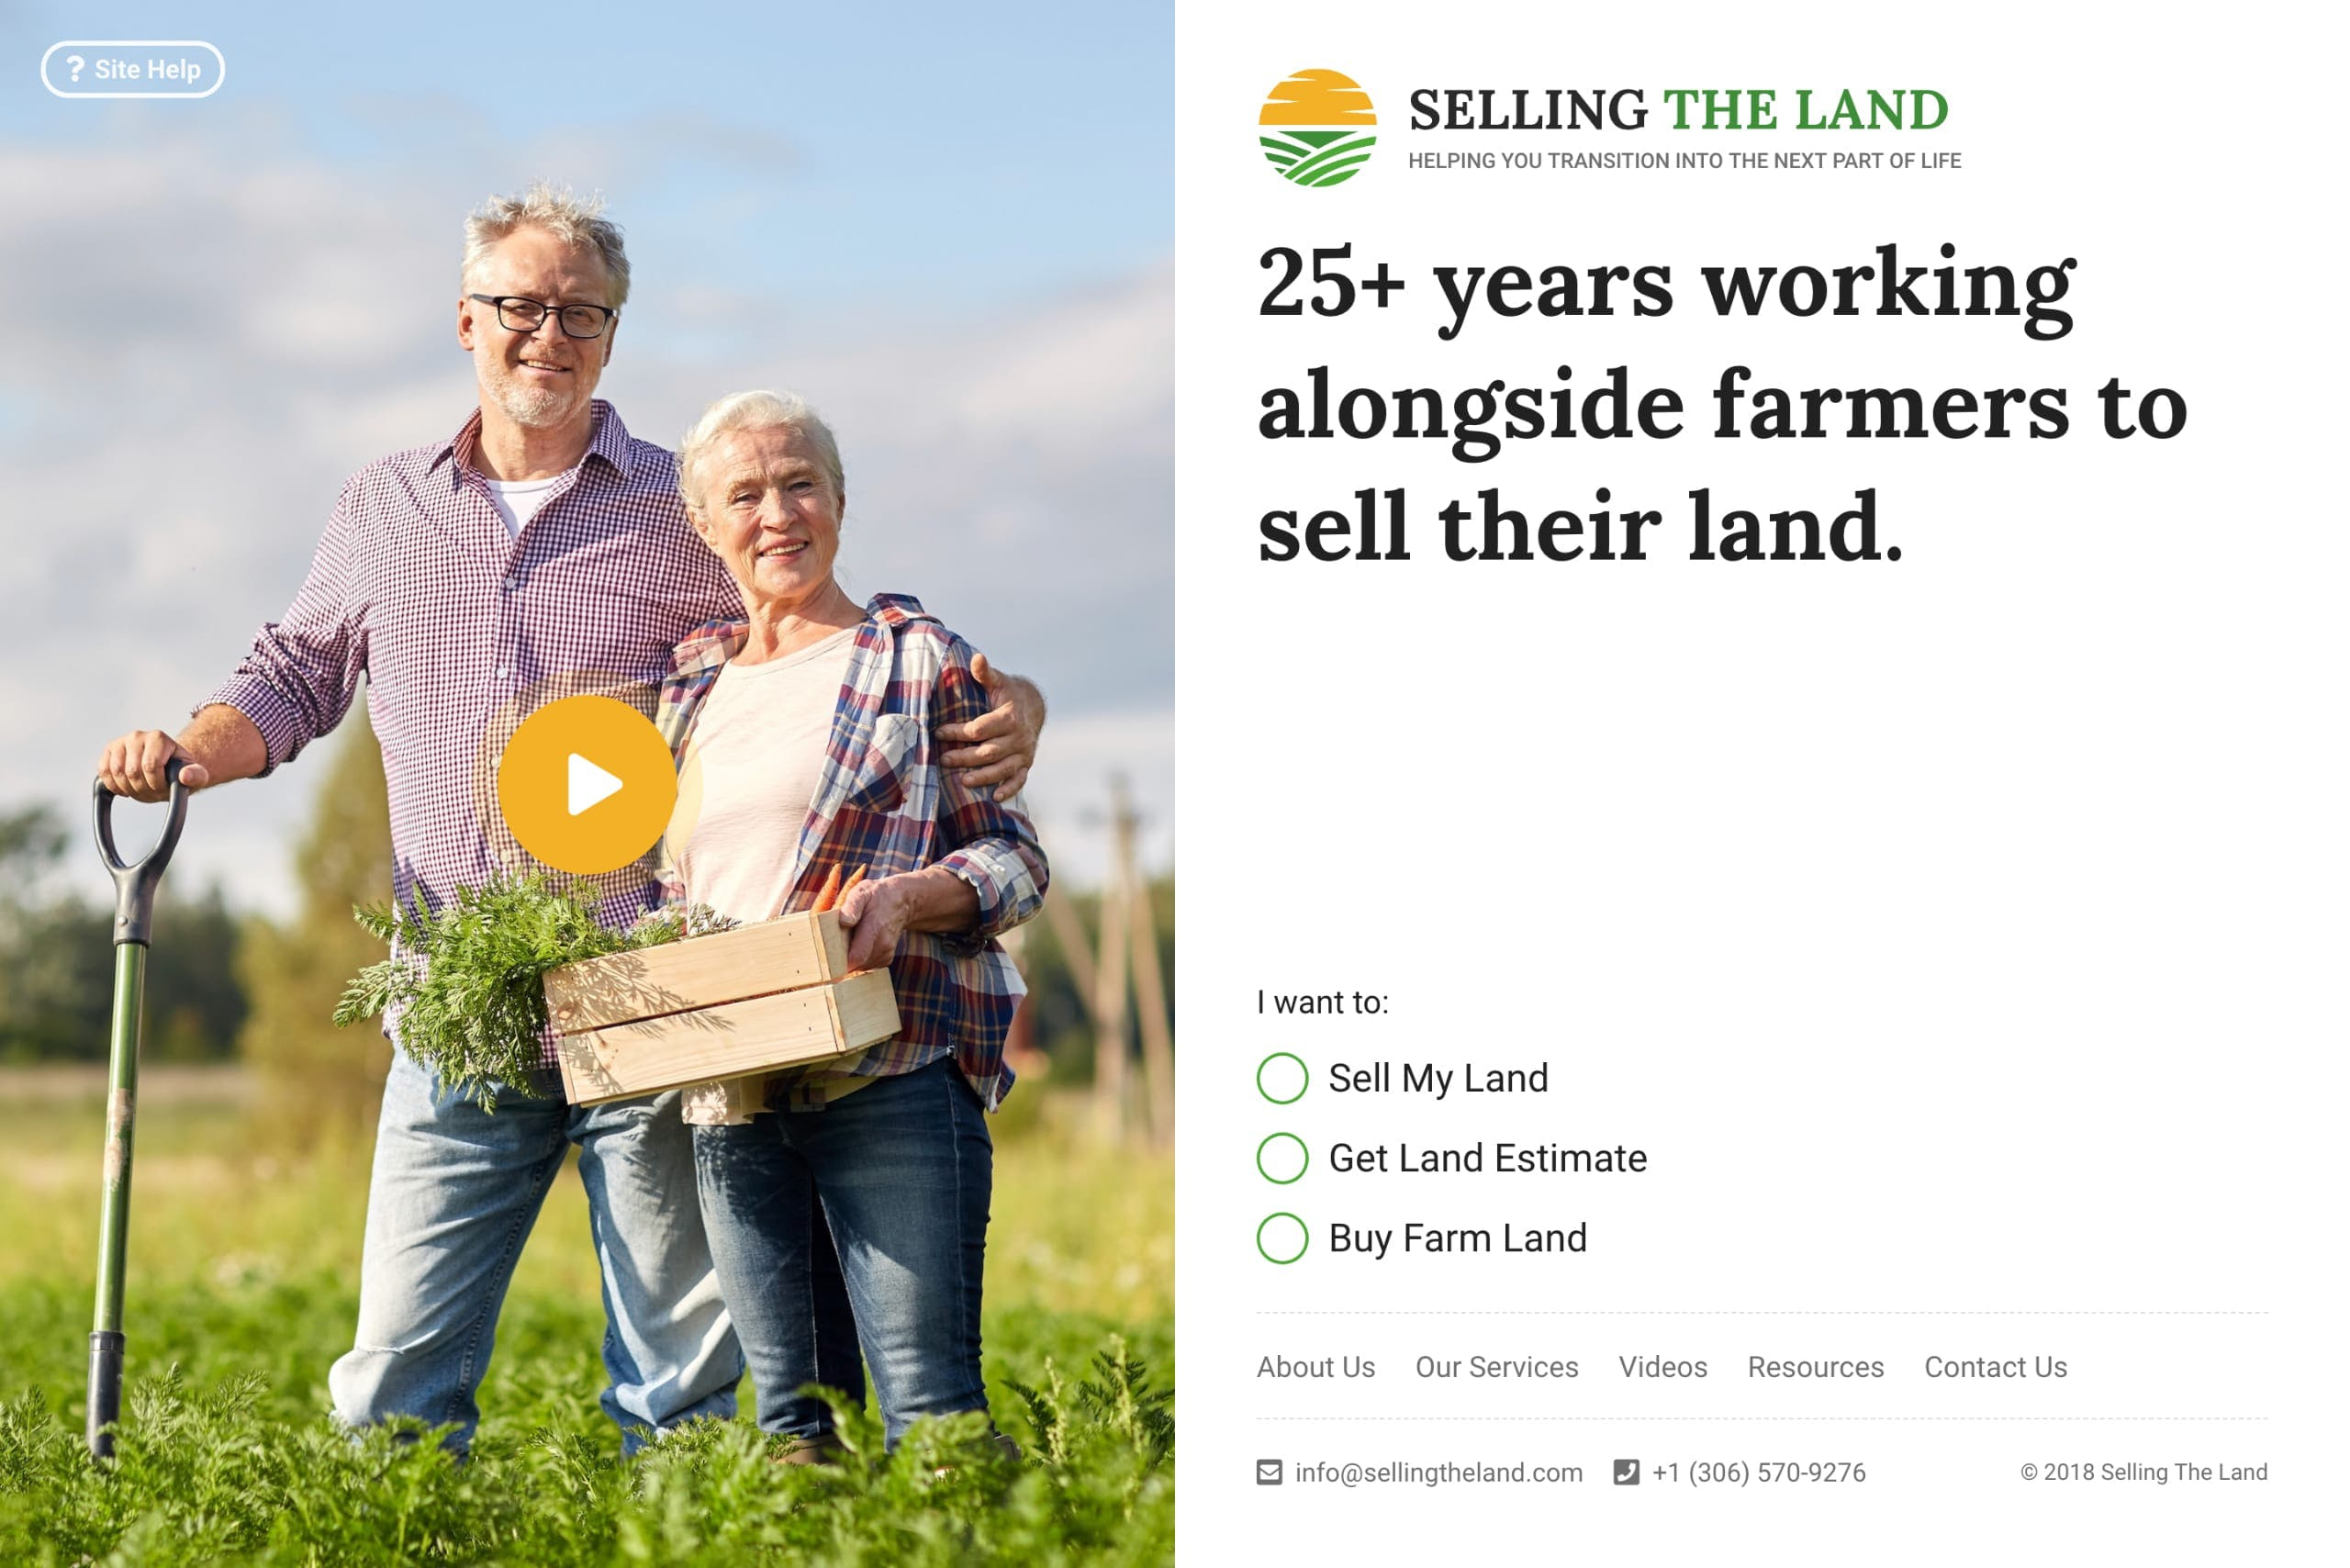 Selling the Land landing page design example